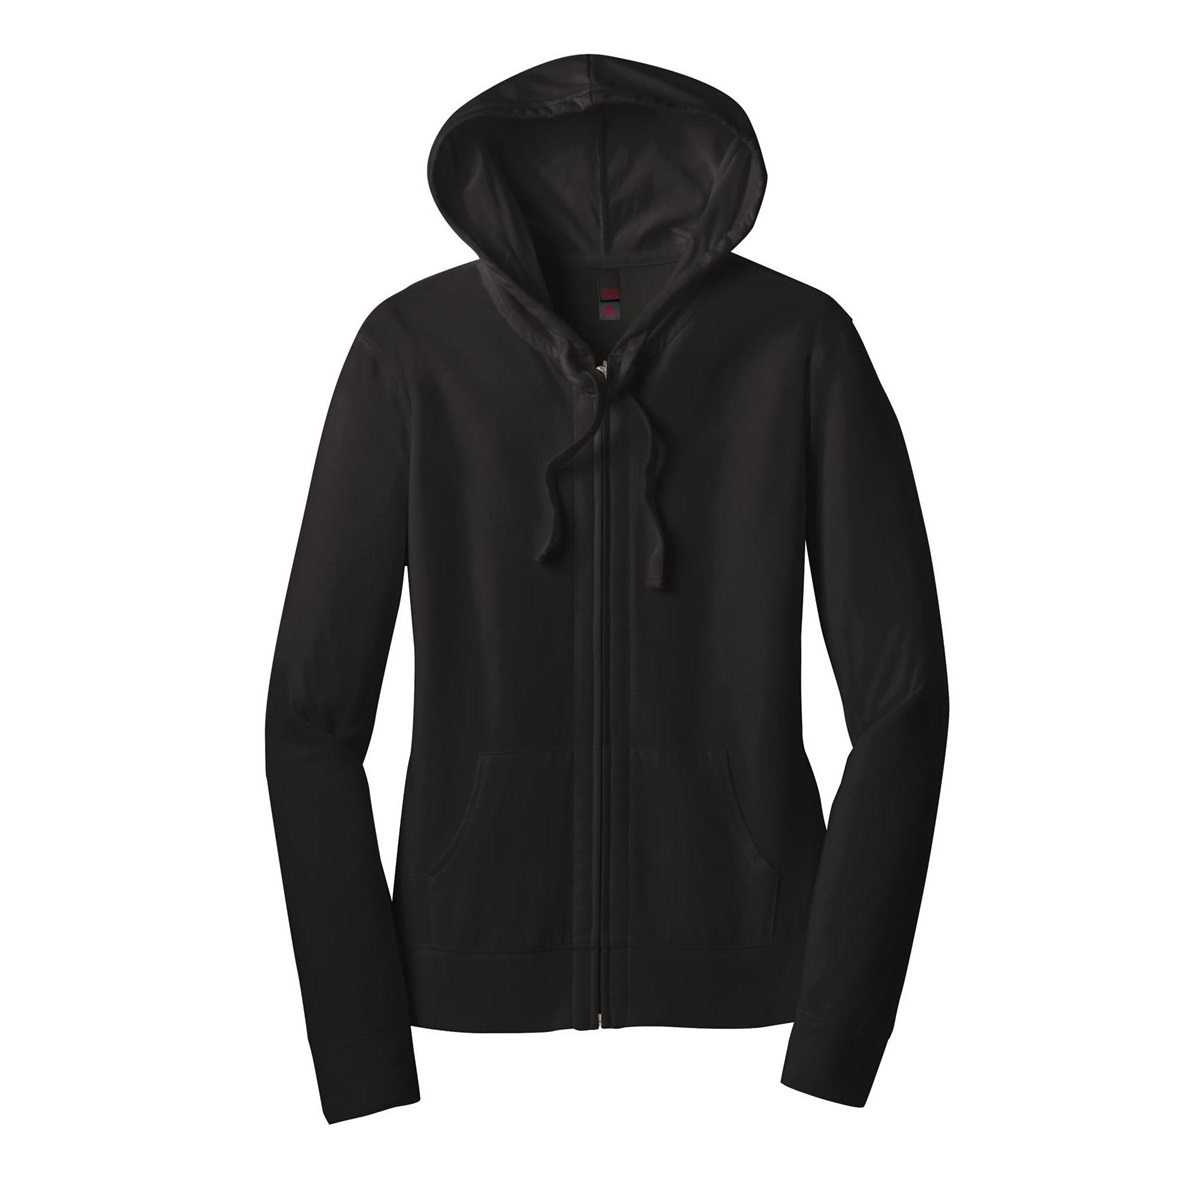 Find great deals on eBay for juniors black hoodie. Shop with confidence.